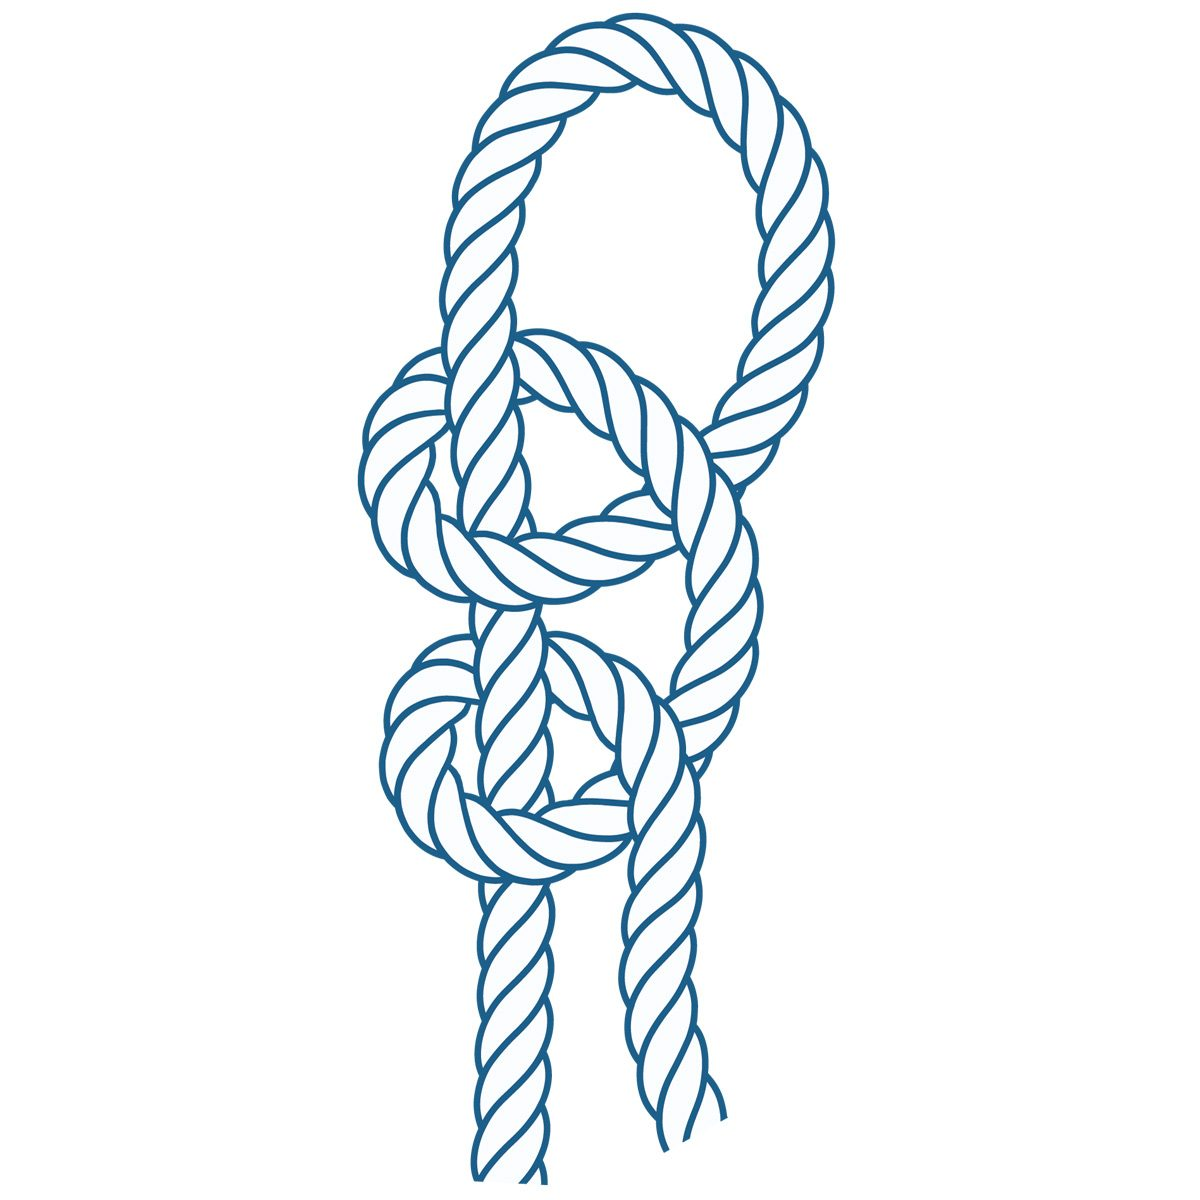 Know any Knot